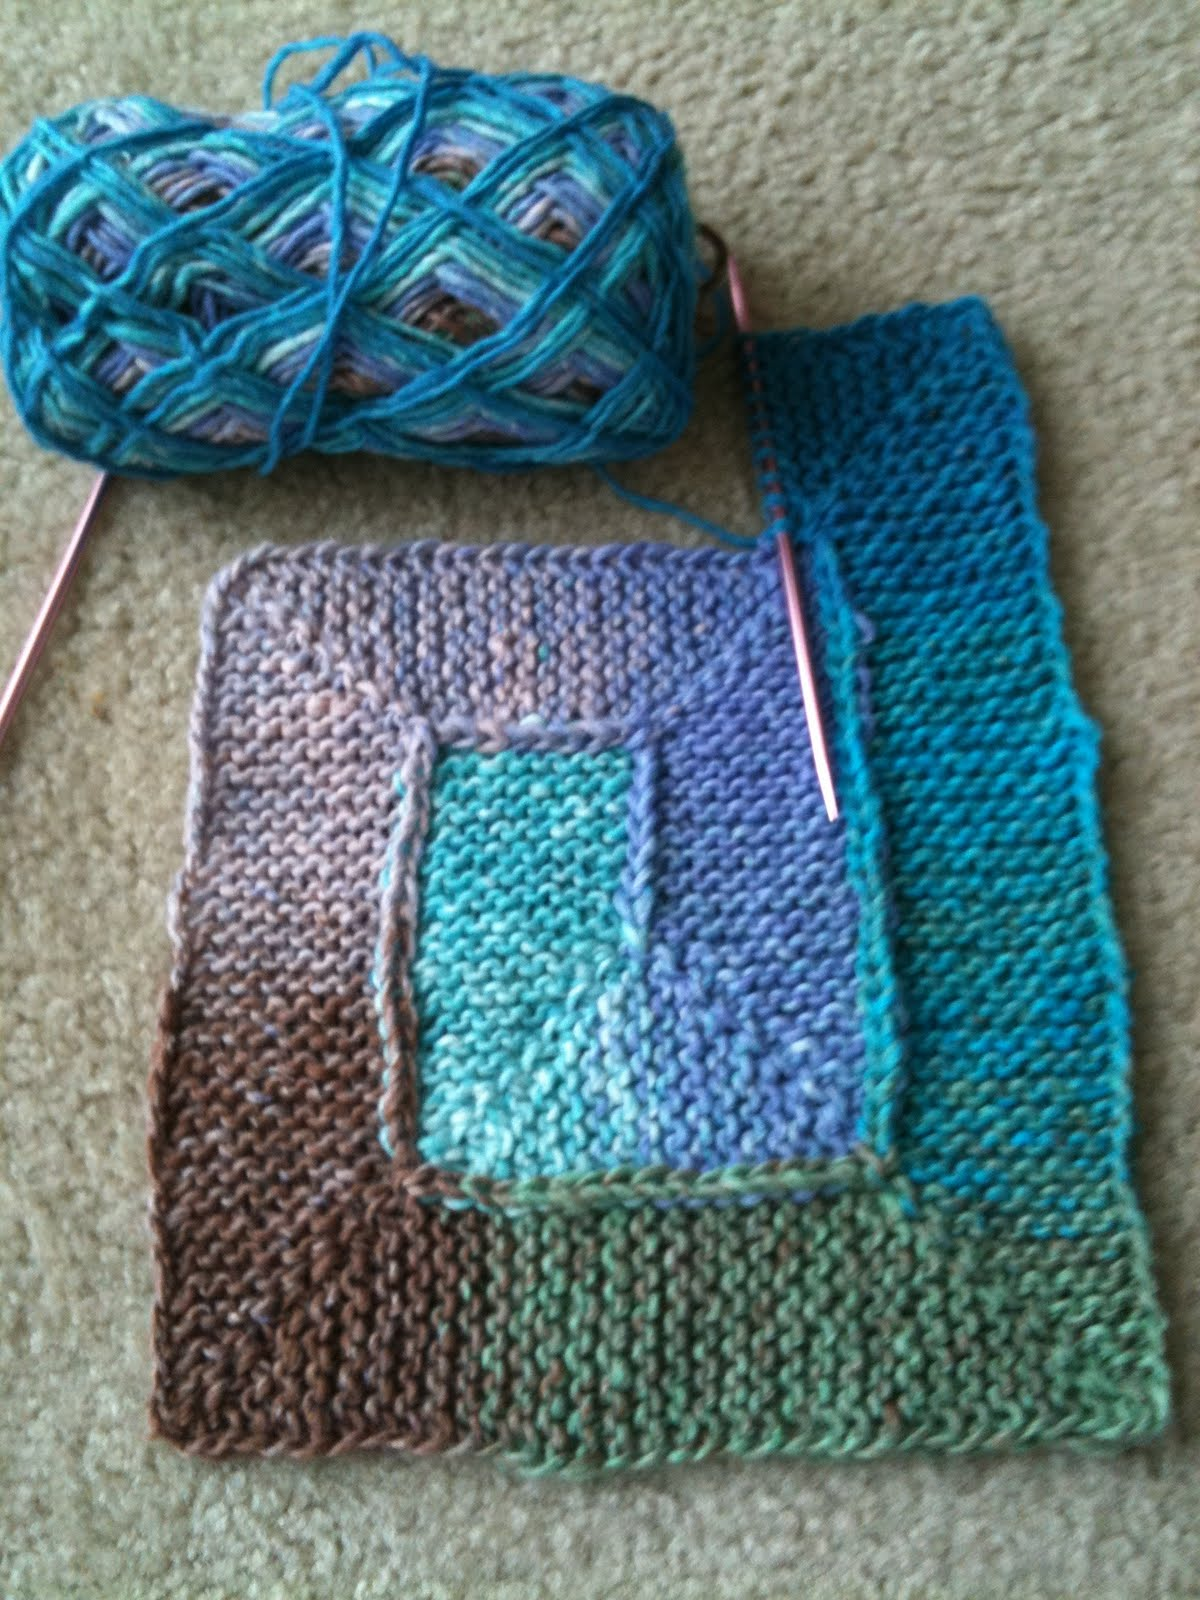 Knitting Pattern For 10 Stitch Blanket : Knit. Read. Bake.: 10 Stitch Blanket